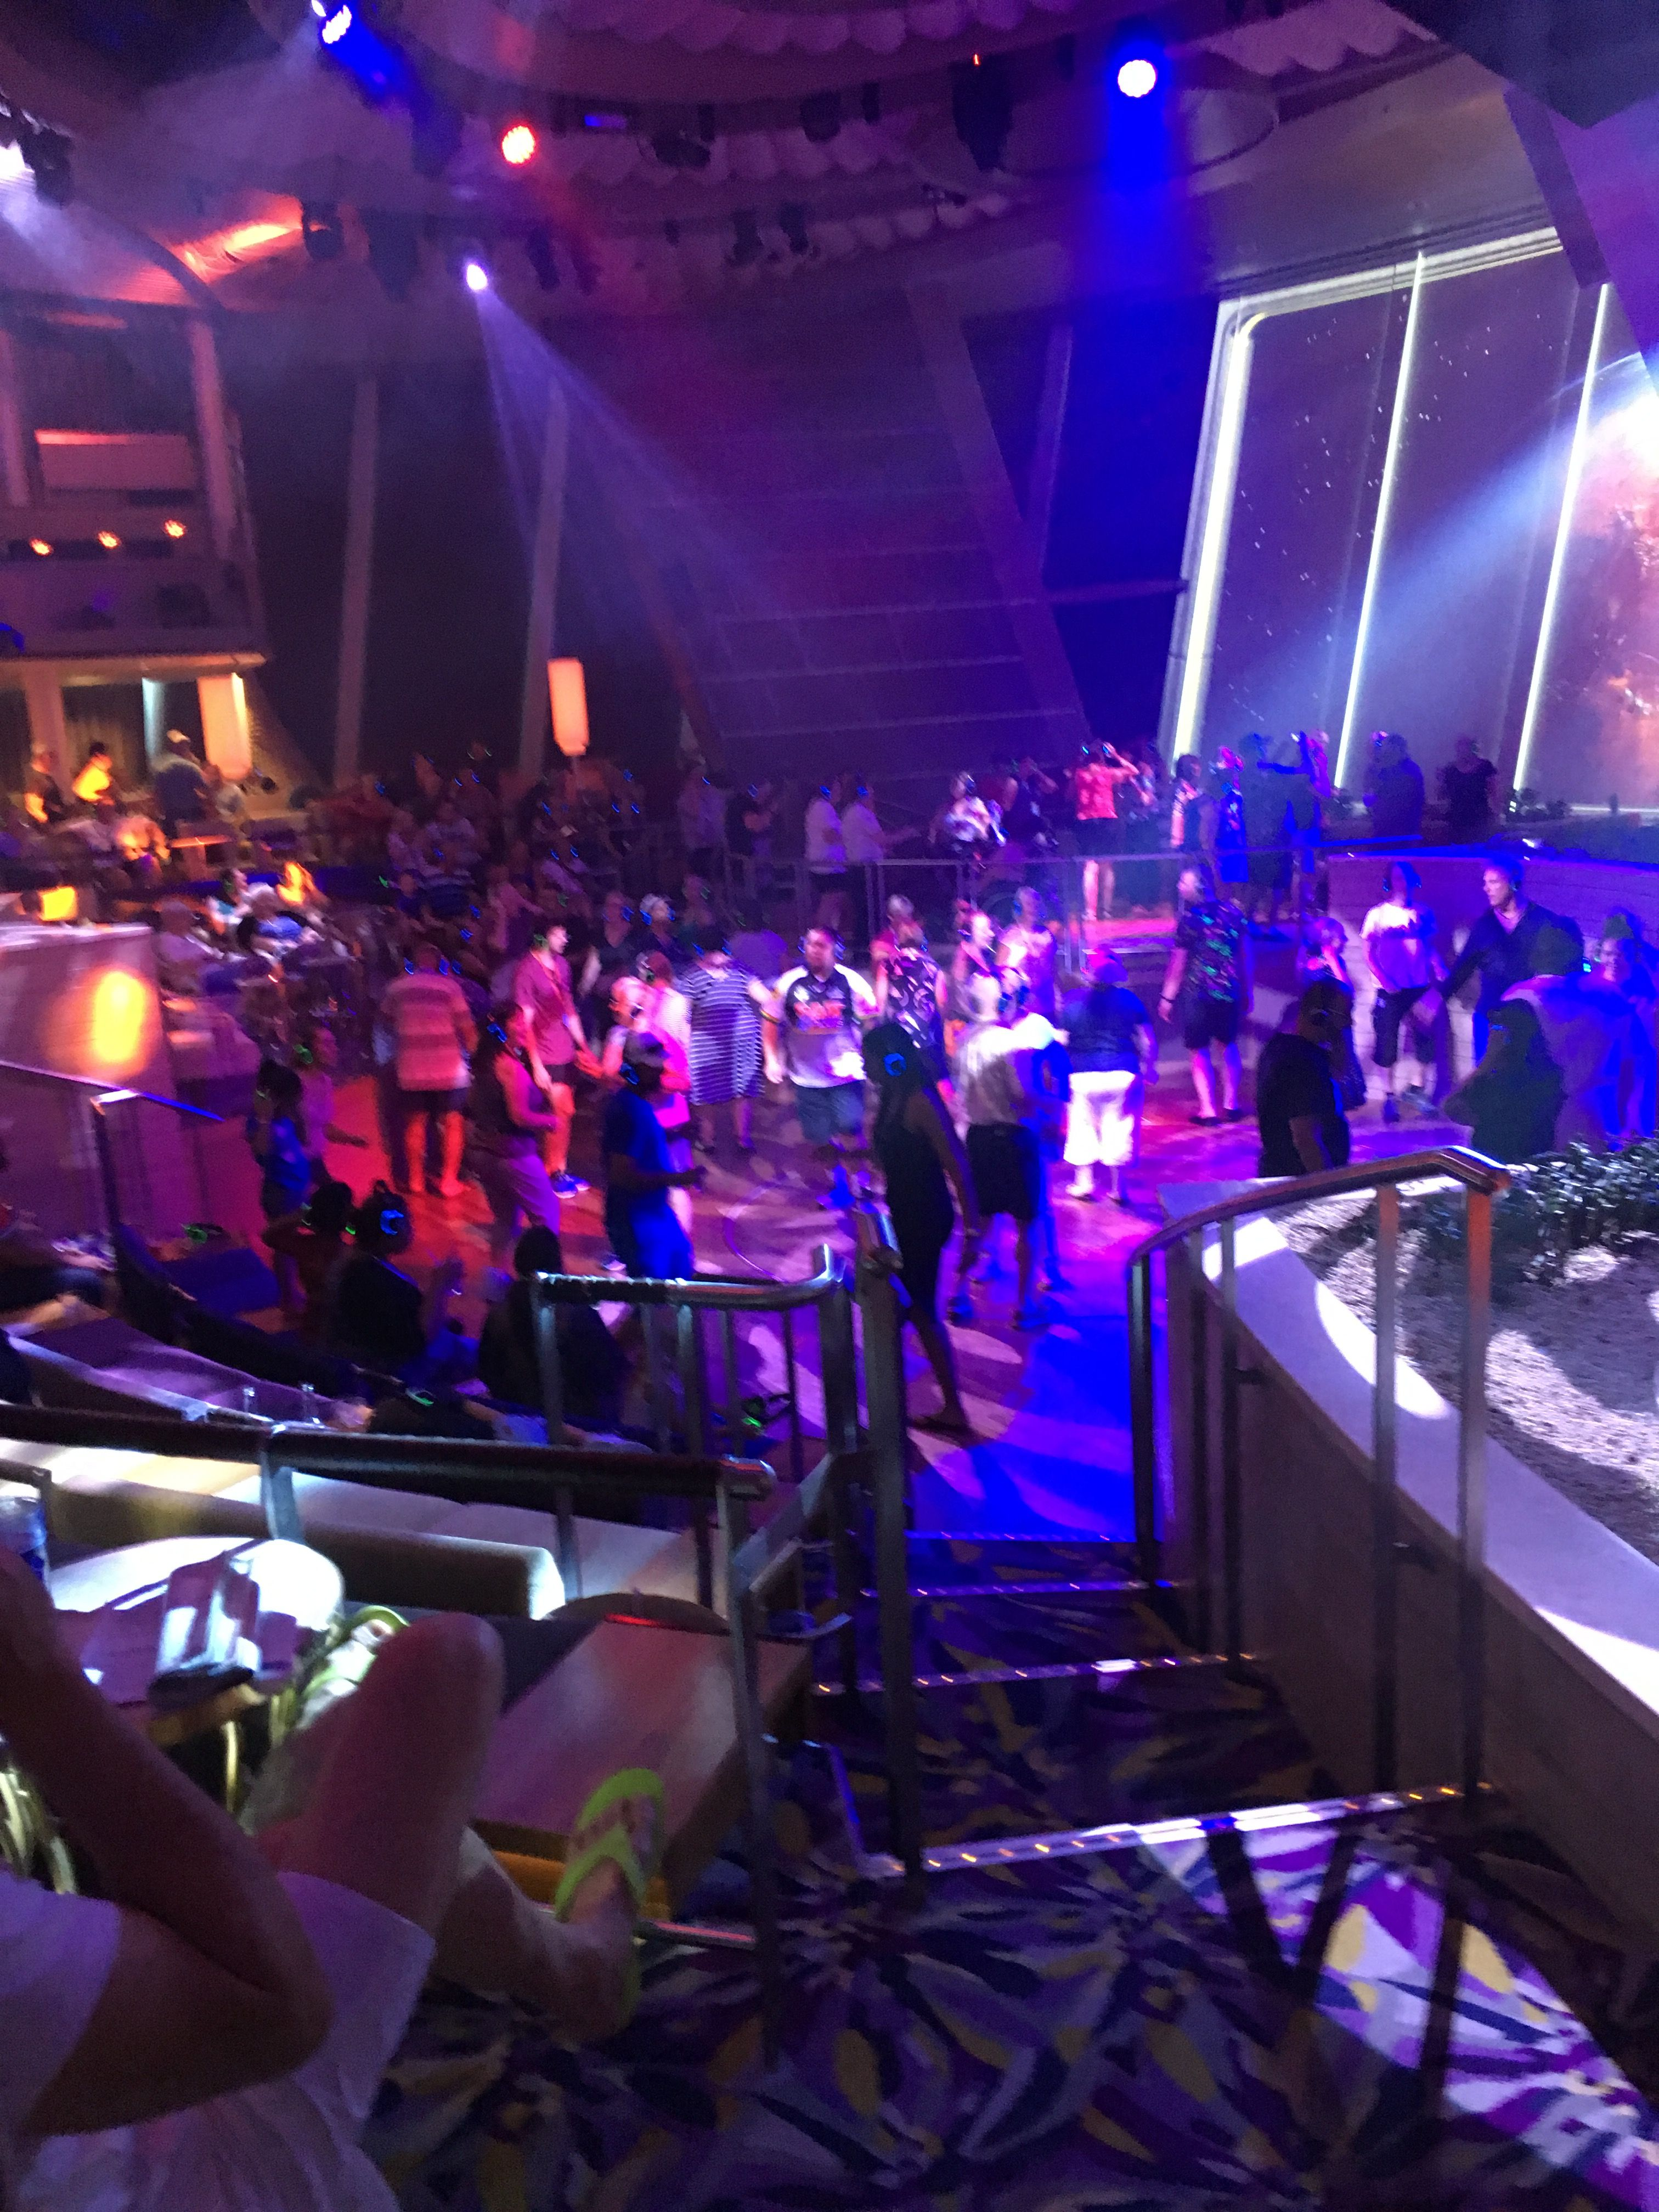 Silent disco. Two70. Ovation of the seas (With images